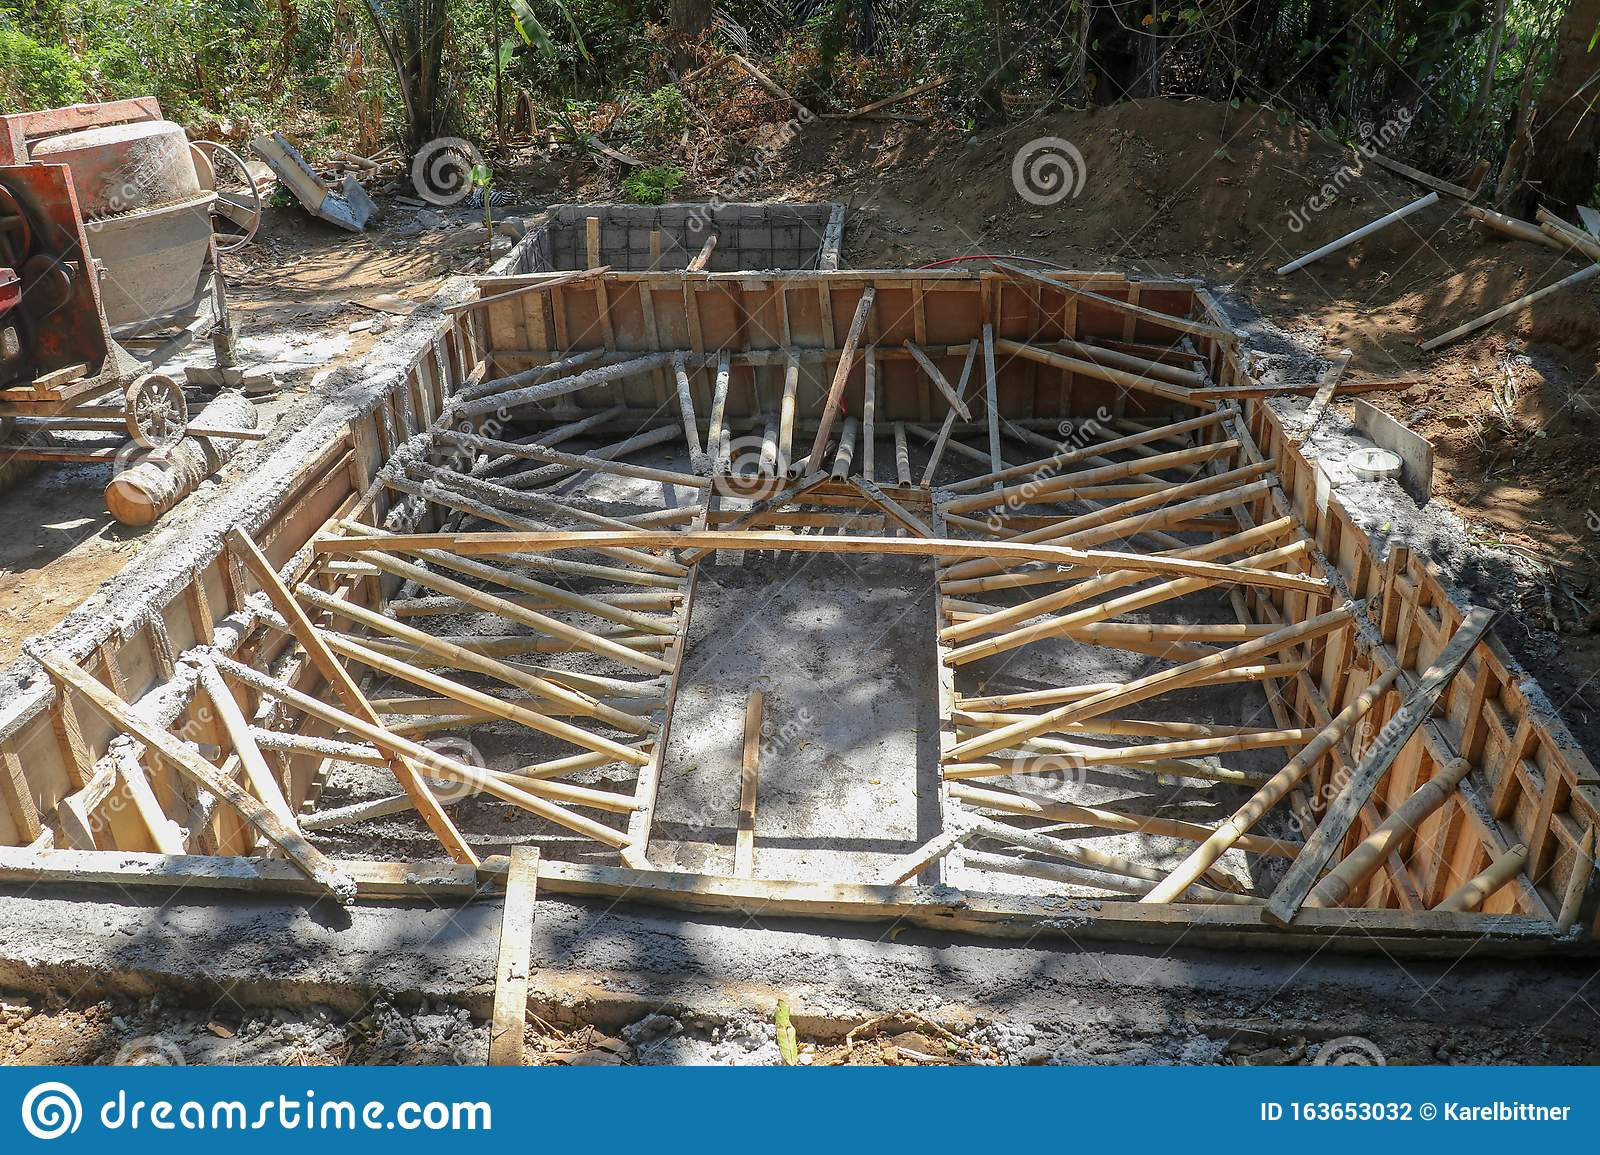 The Ground Recessed Pool In The Process Of Construction Masonry Formwork Reinforced With Bamboo Trunks Excavated Clay Piled Up Stock Photo Image Of Cement Modern 163653032